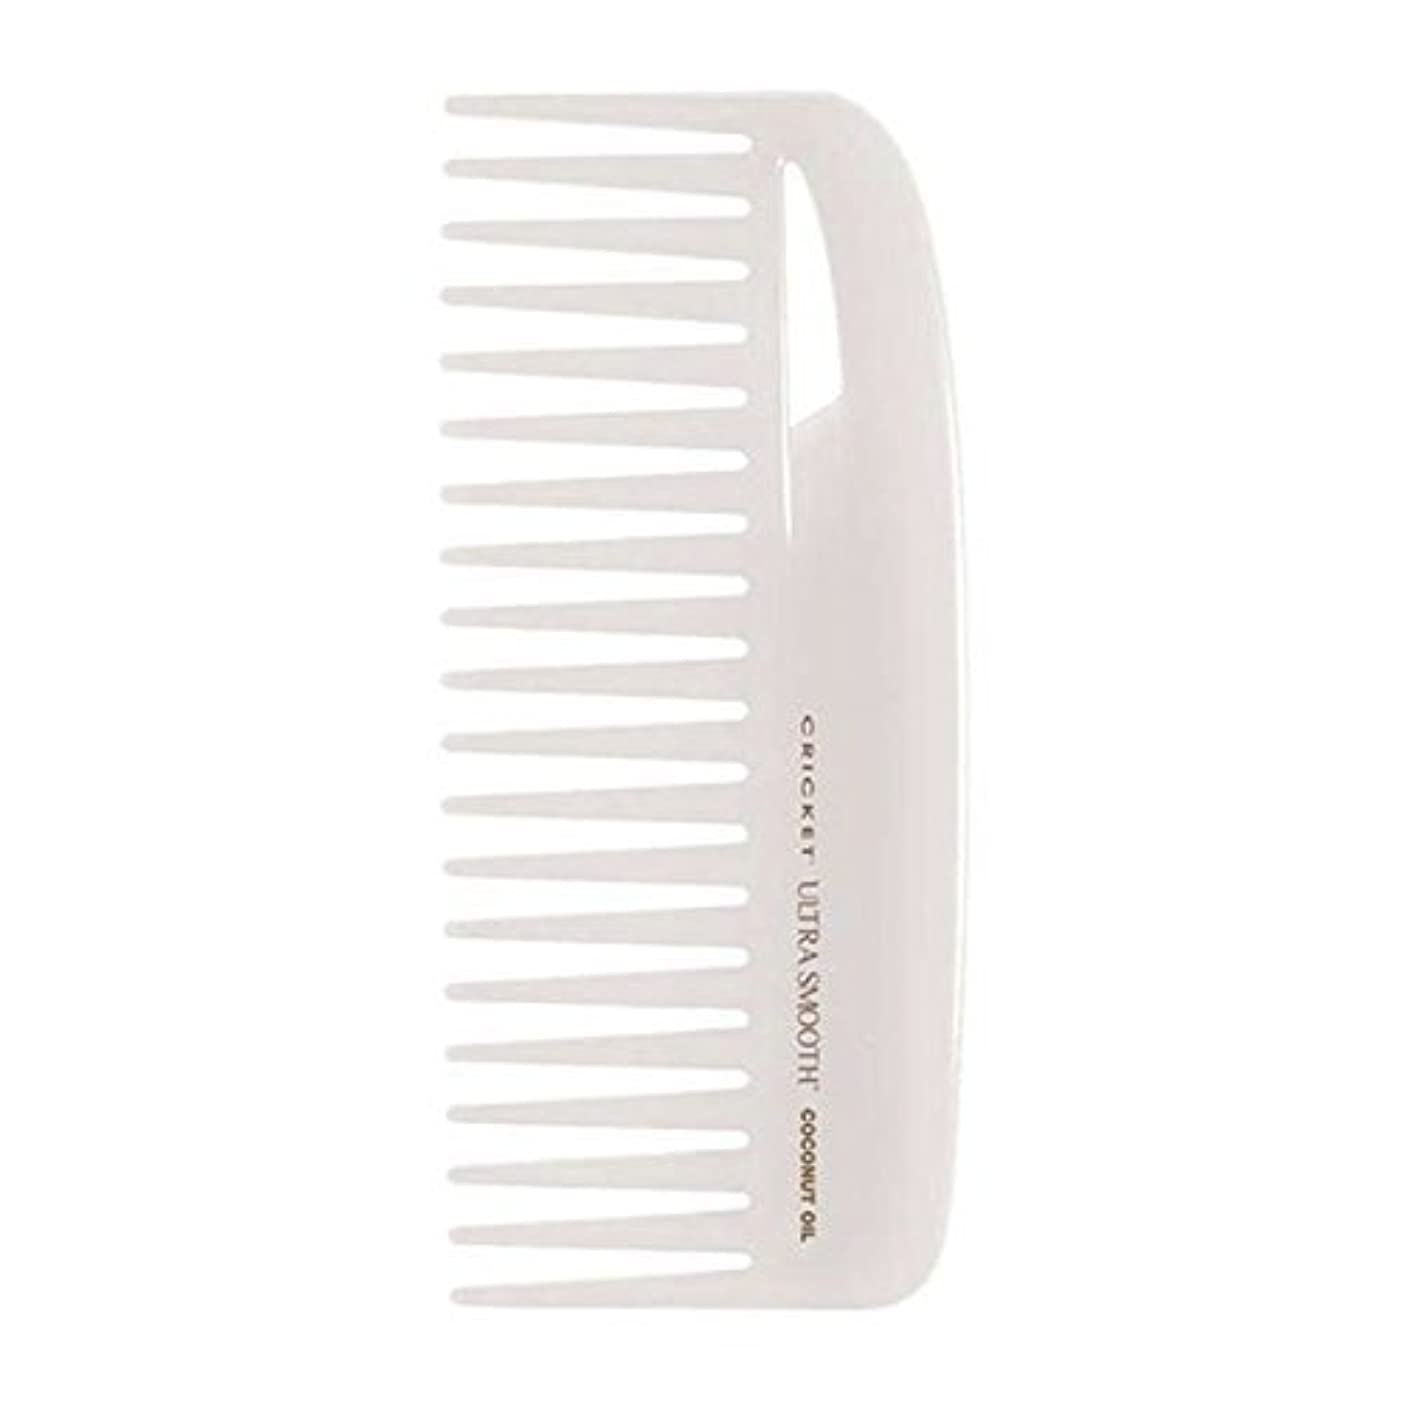 放送腰蚊Cricket Ultra Smooth Coconut Conditioning Comb, 1 Count [並行輸入品]